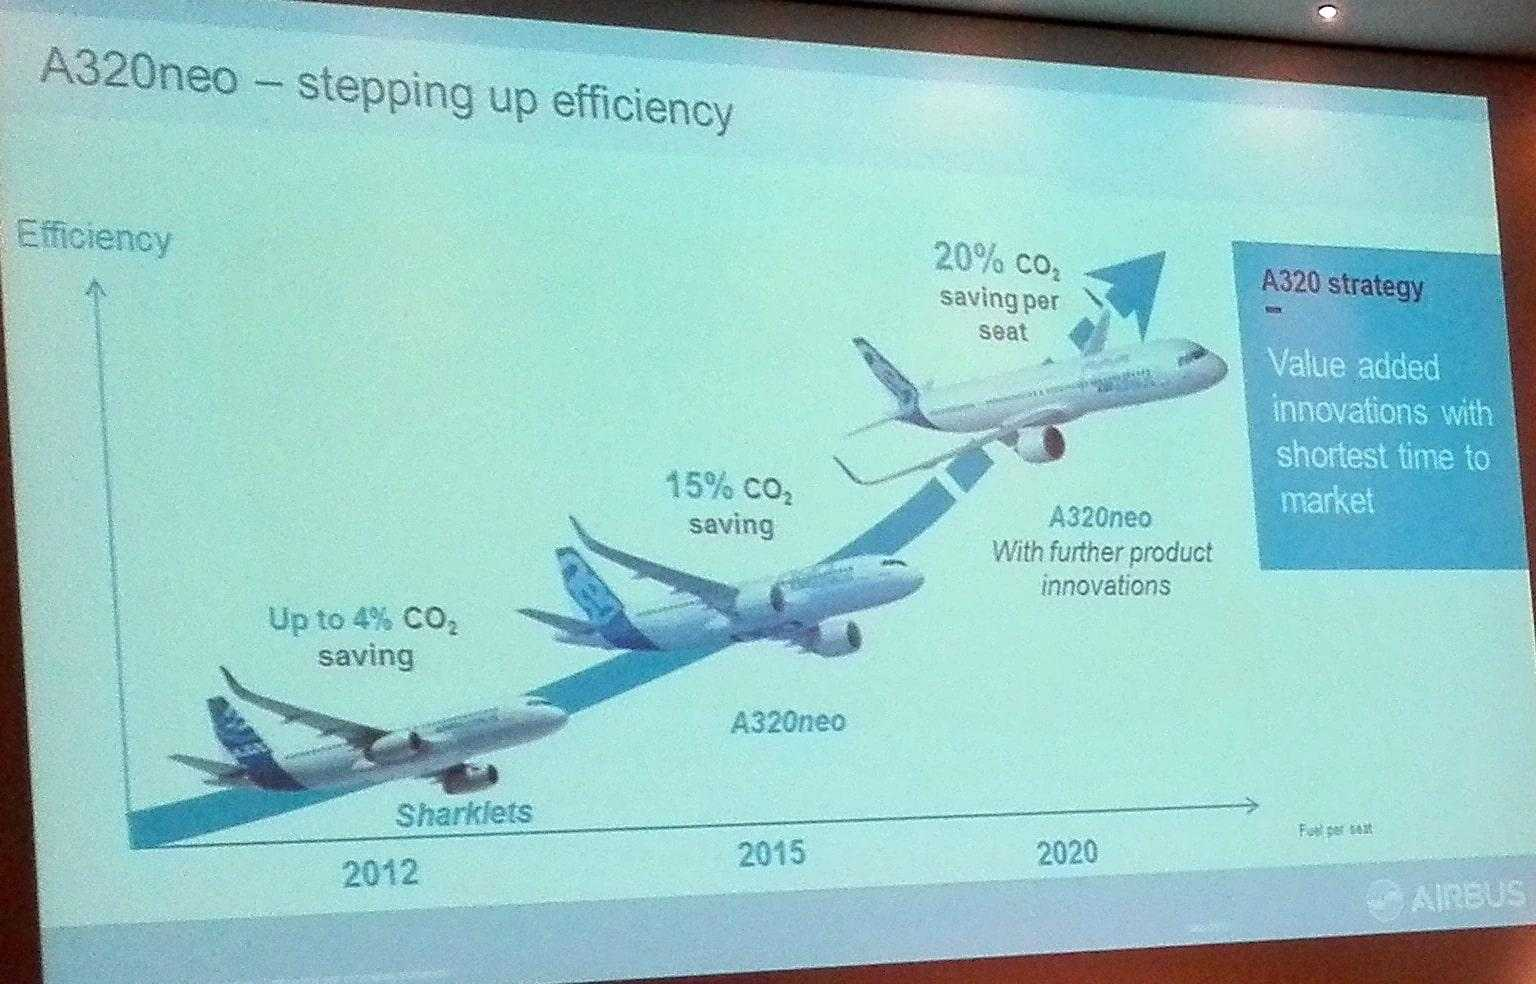 Airbus ECO-EFFICIENCY